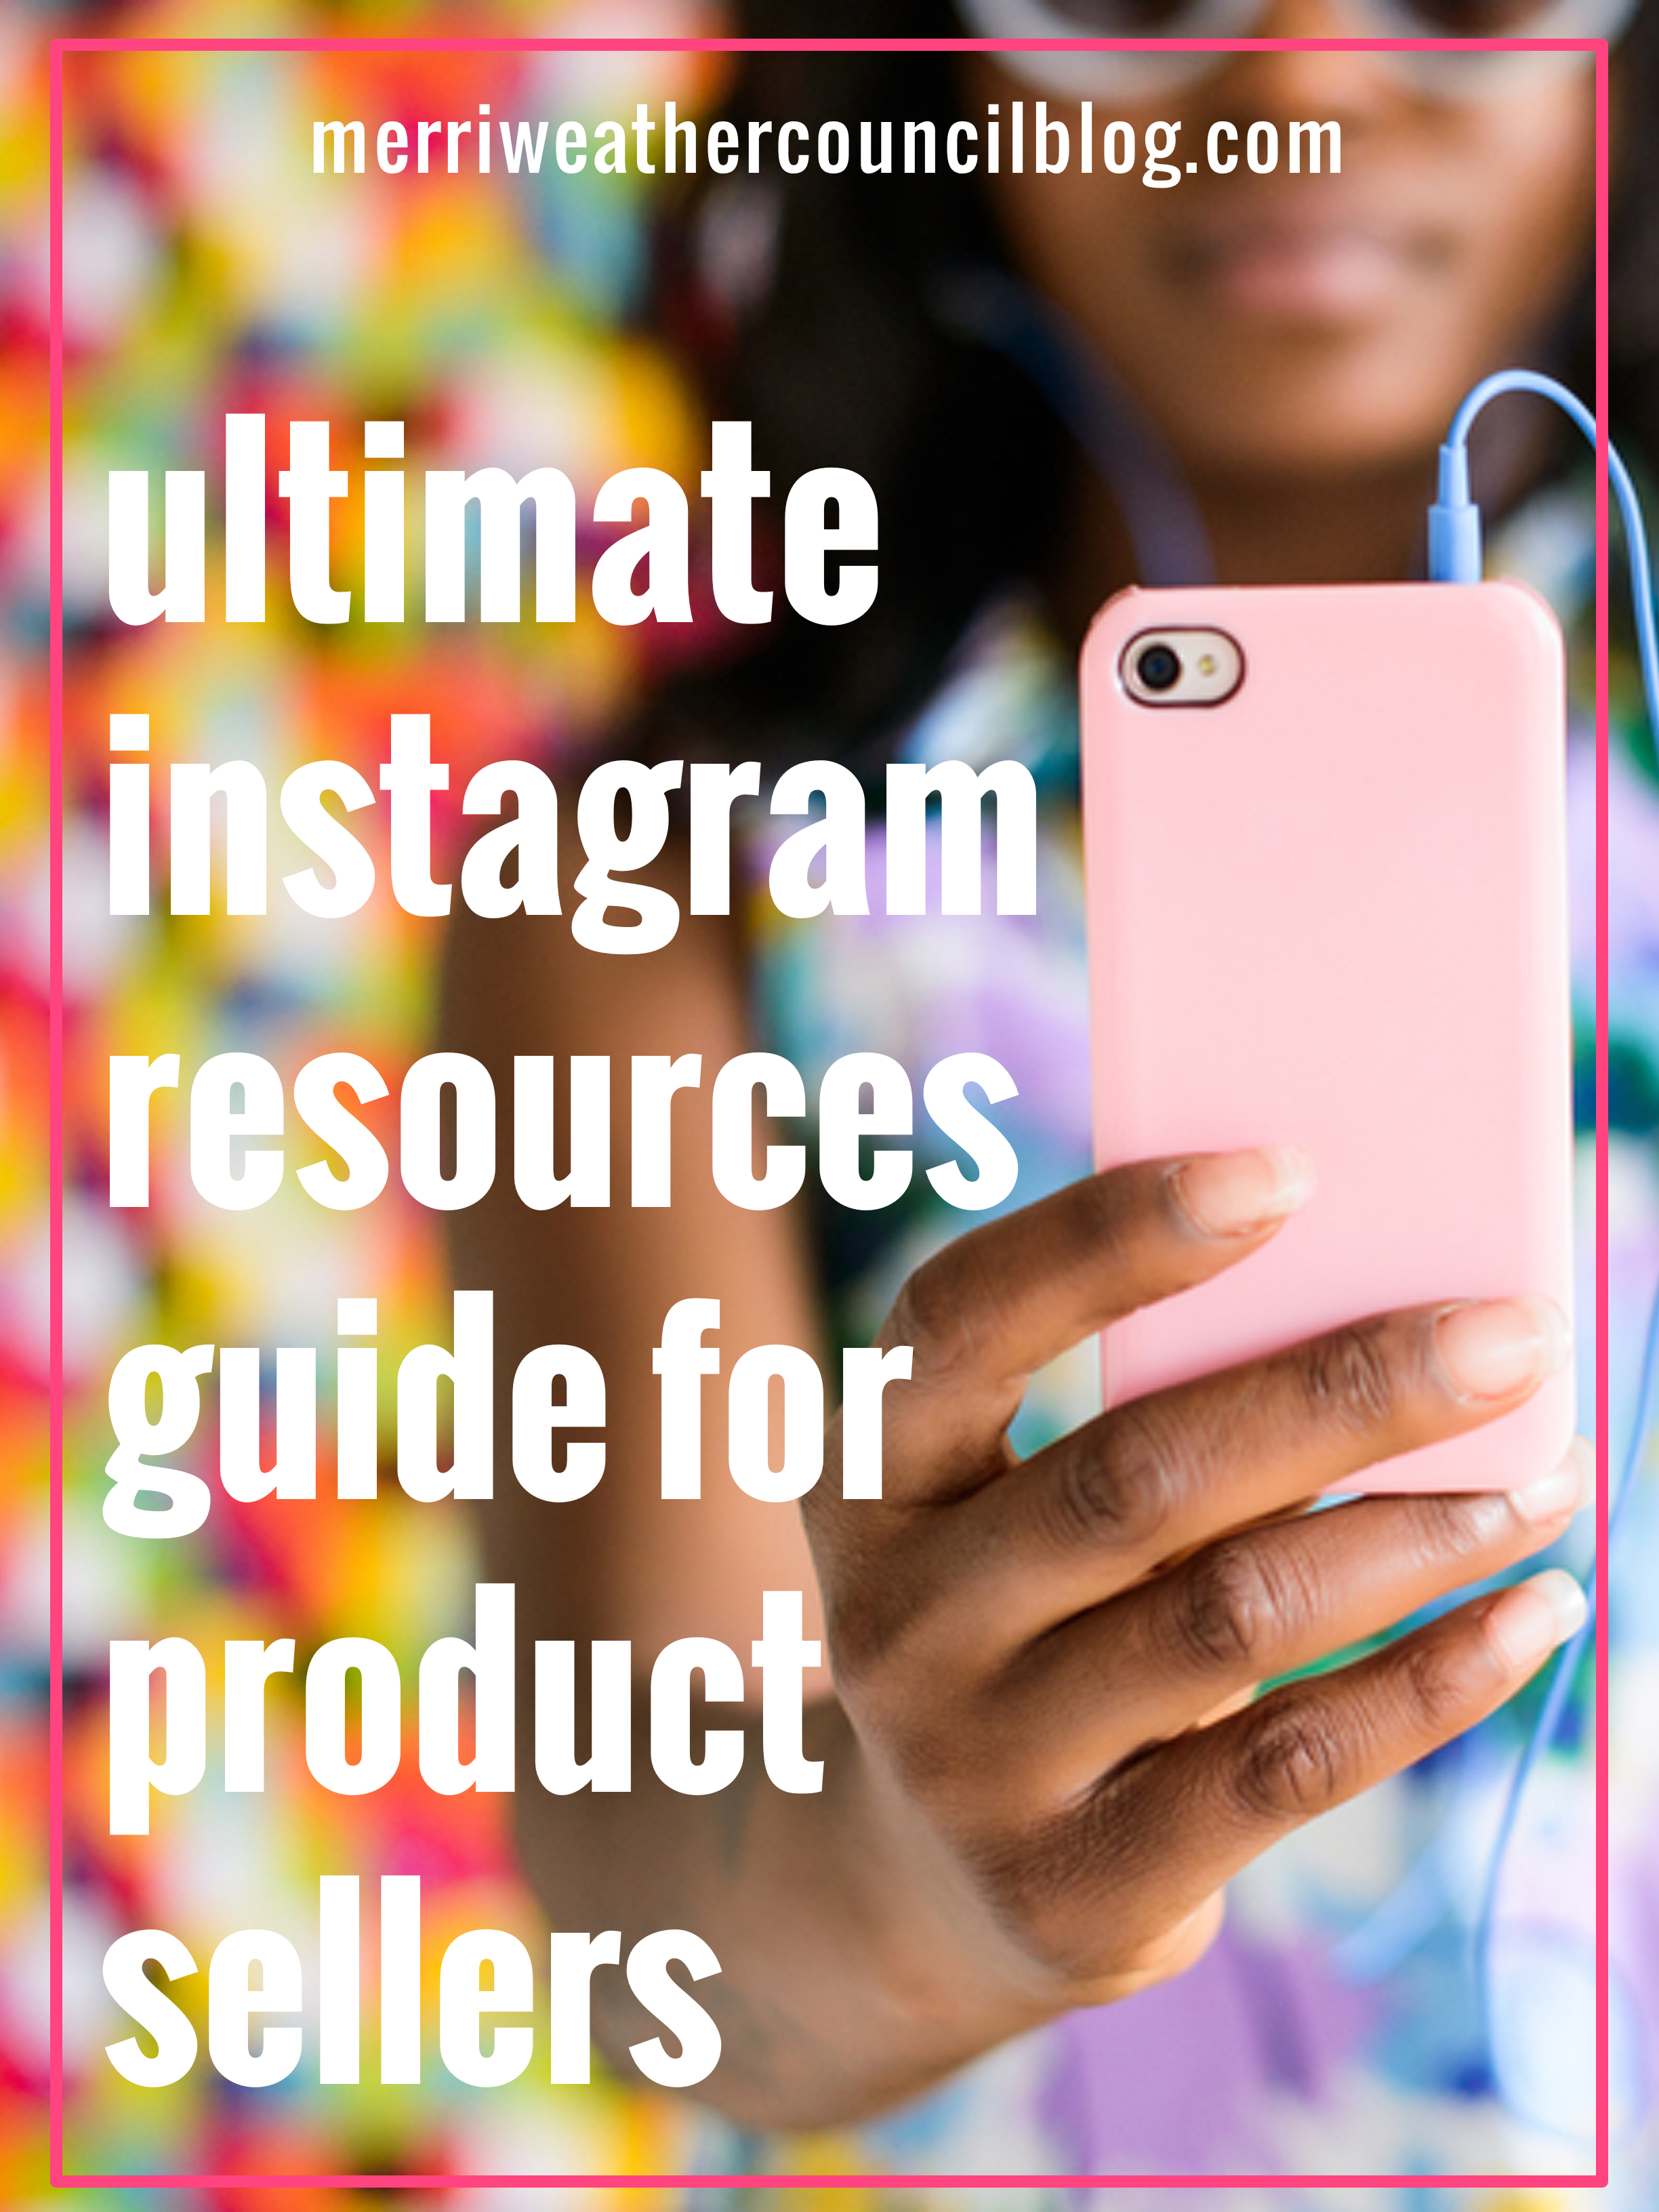 The Ultimate Instagram Resources Round Up for Product Sellers | the merriweather council blog